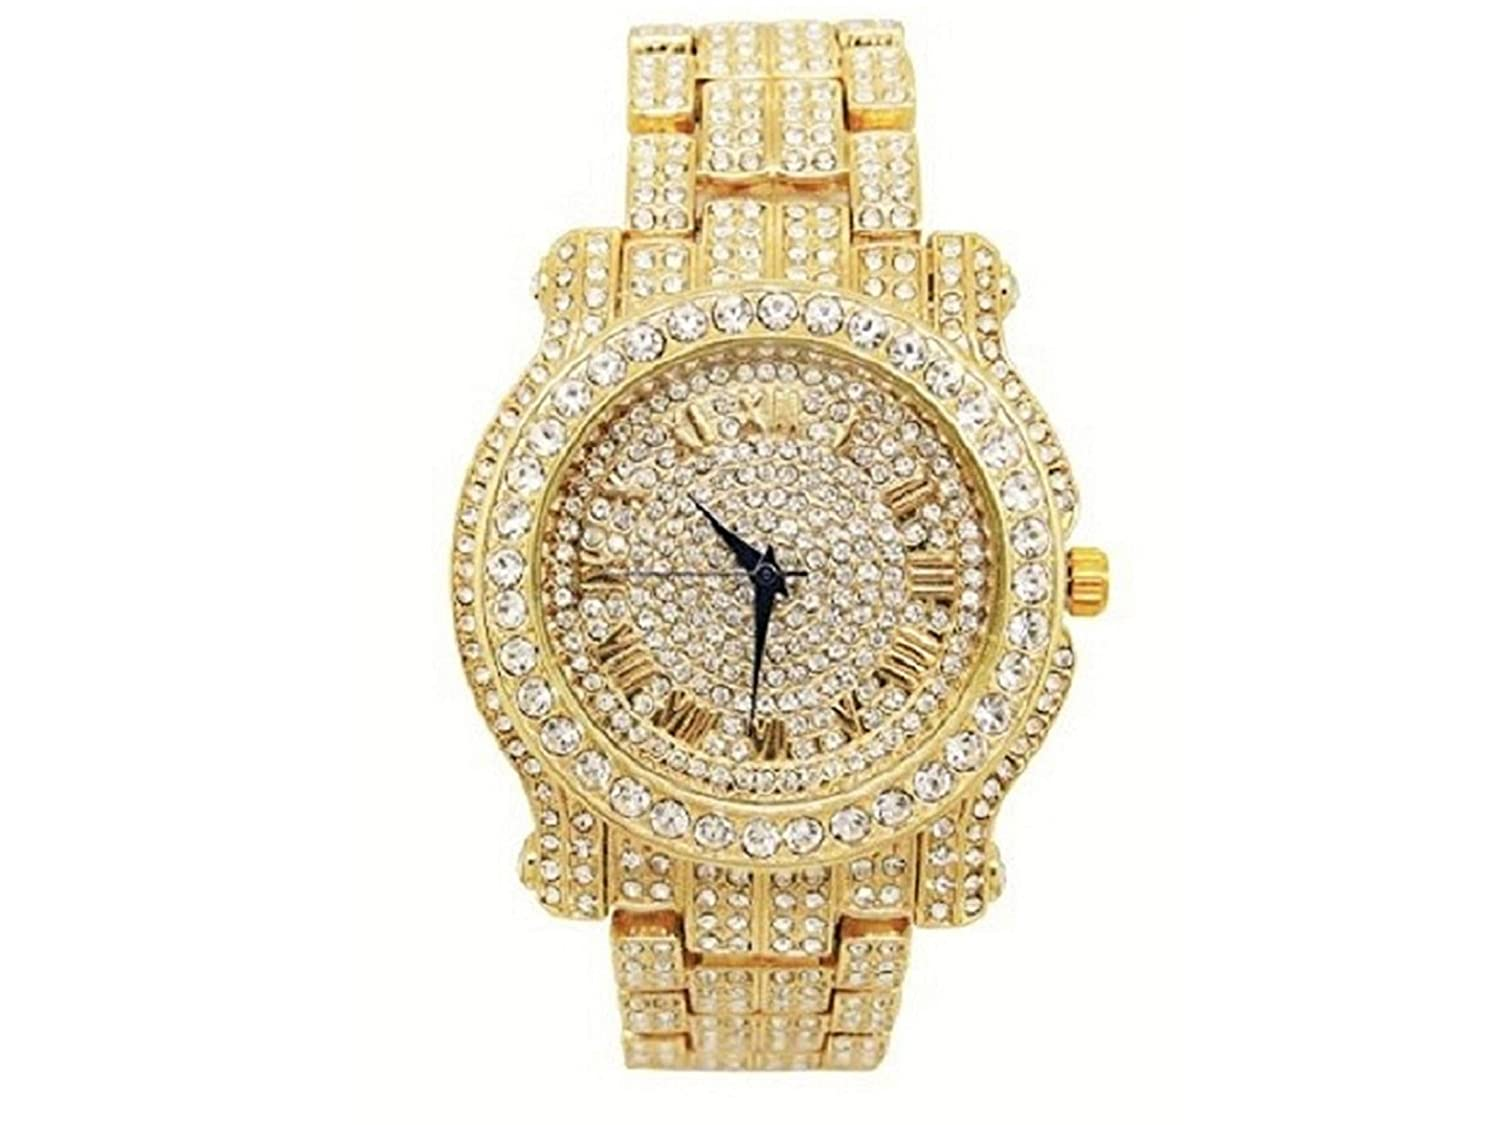 6878dae16f15b Bling-ed Out Round Luxury Mens Watch w/Bling-ed Out Cuban Bracelet - L0504B  - Cuban Gold